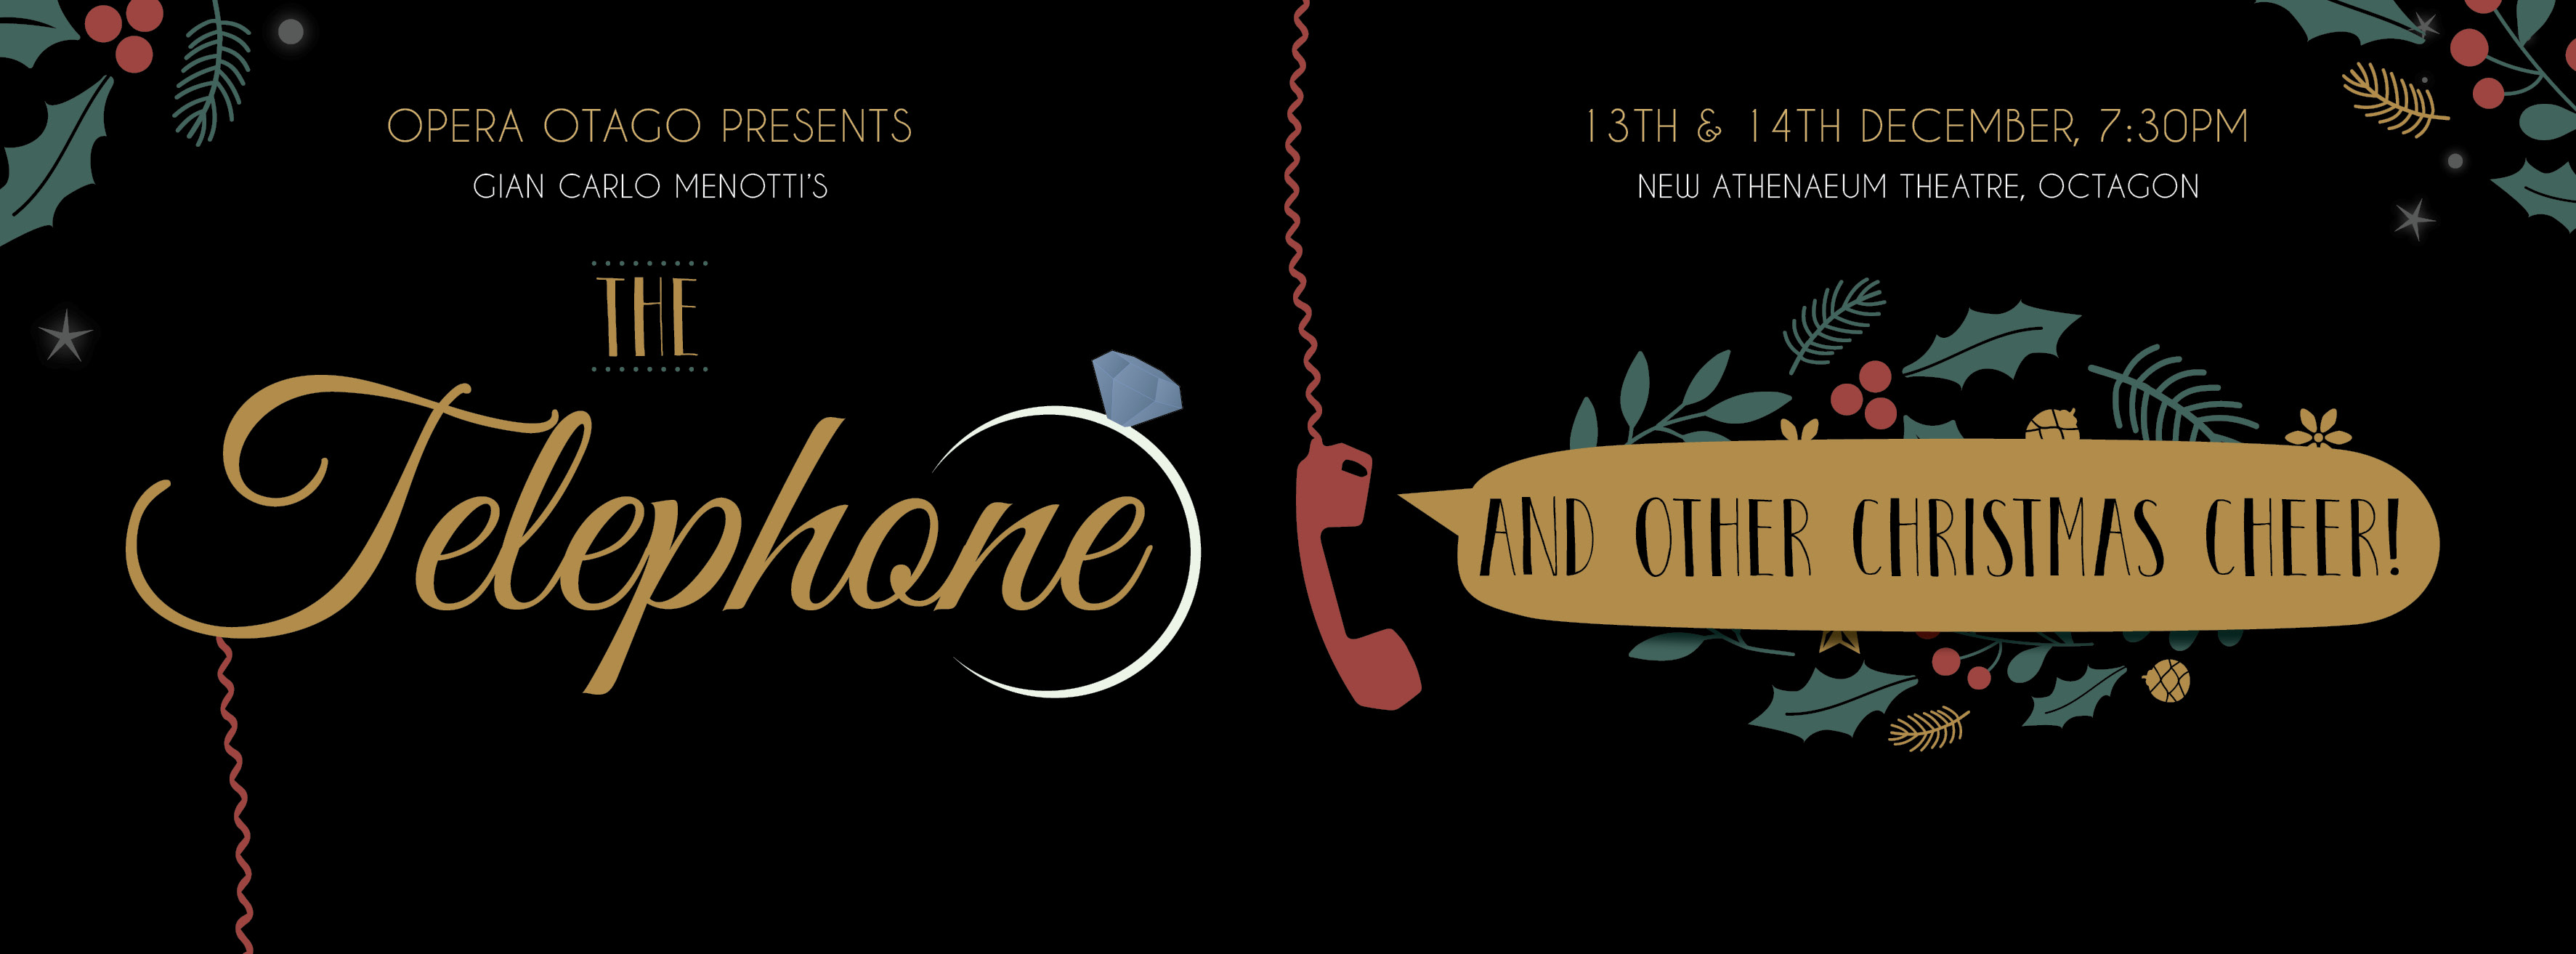 The Telephone - Facebook Banner Image